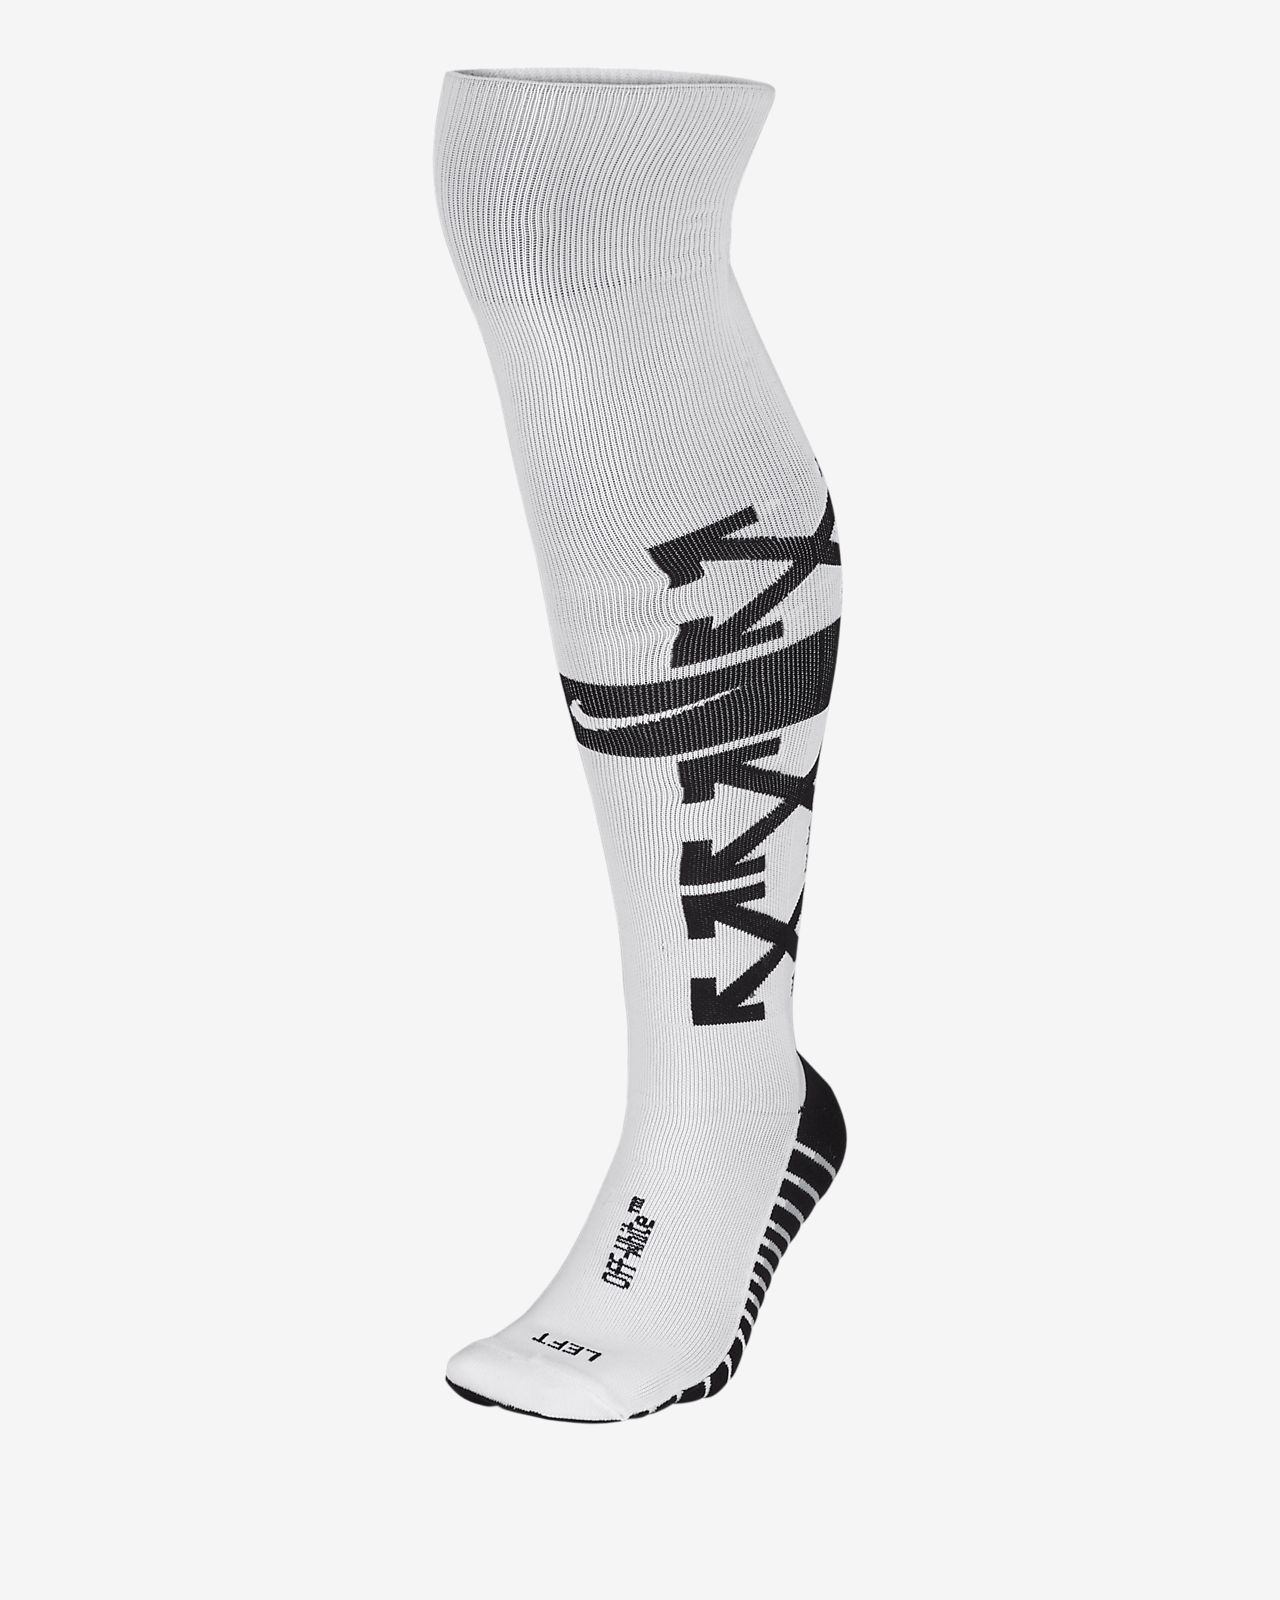 mieux aimé 4d3e2 6f6c1 Nike x Off-White Football Socks